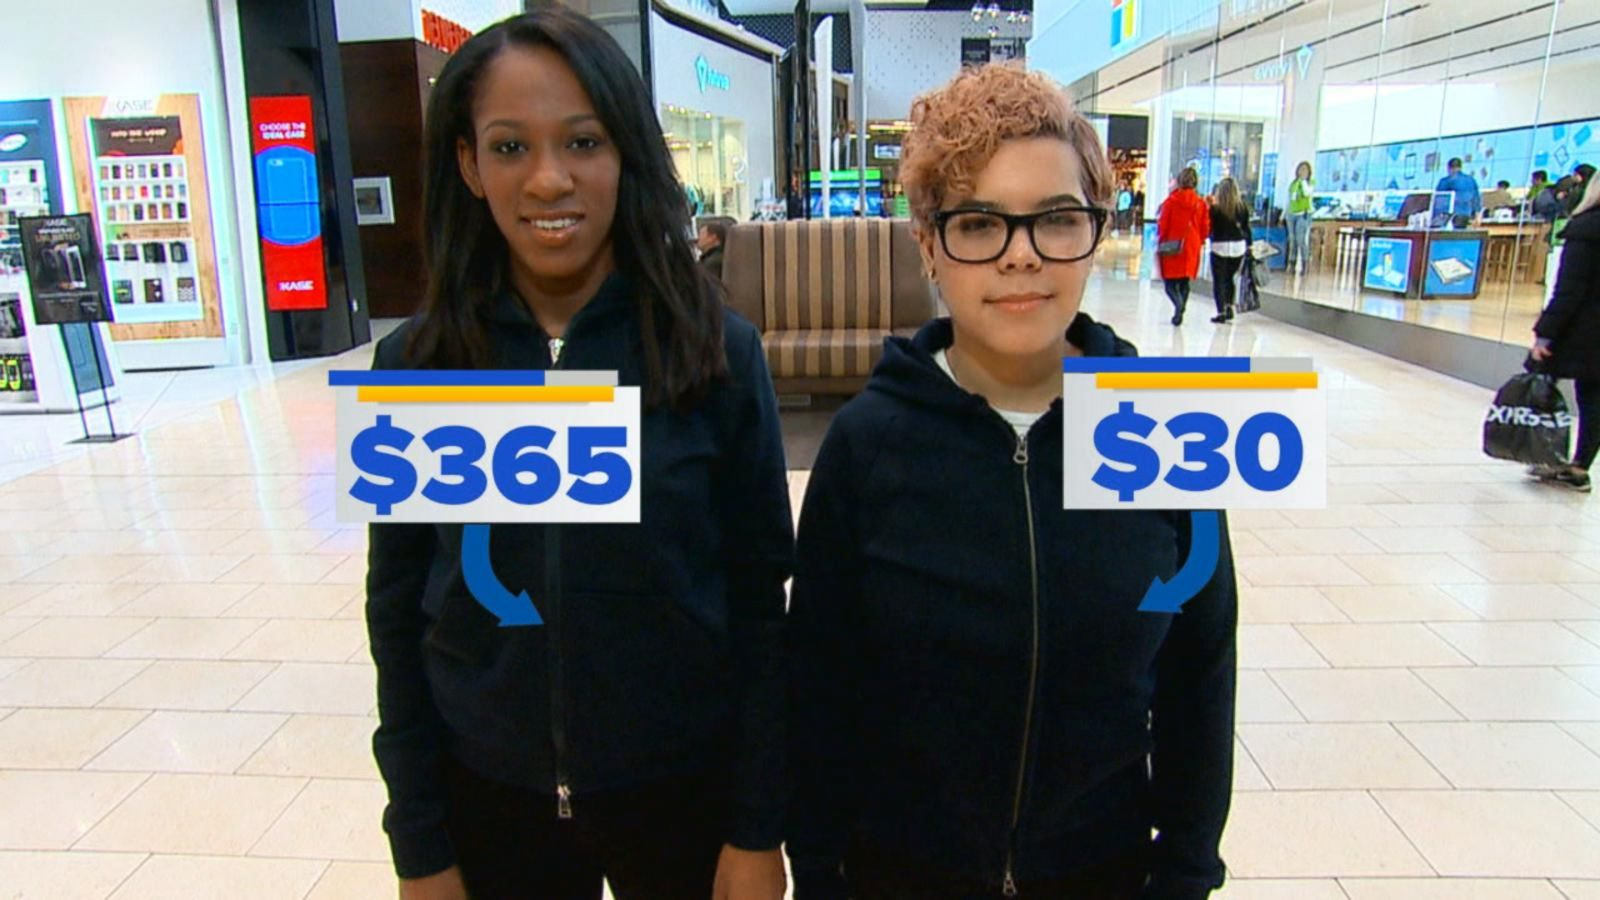 VIDEO: Spend or Splurge? Comparing Affordable and Designer Hoodies